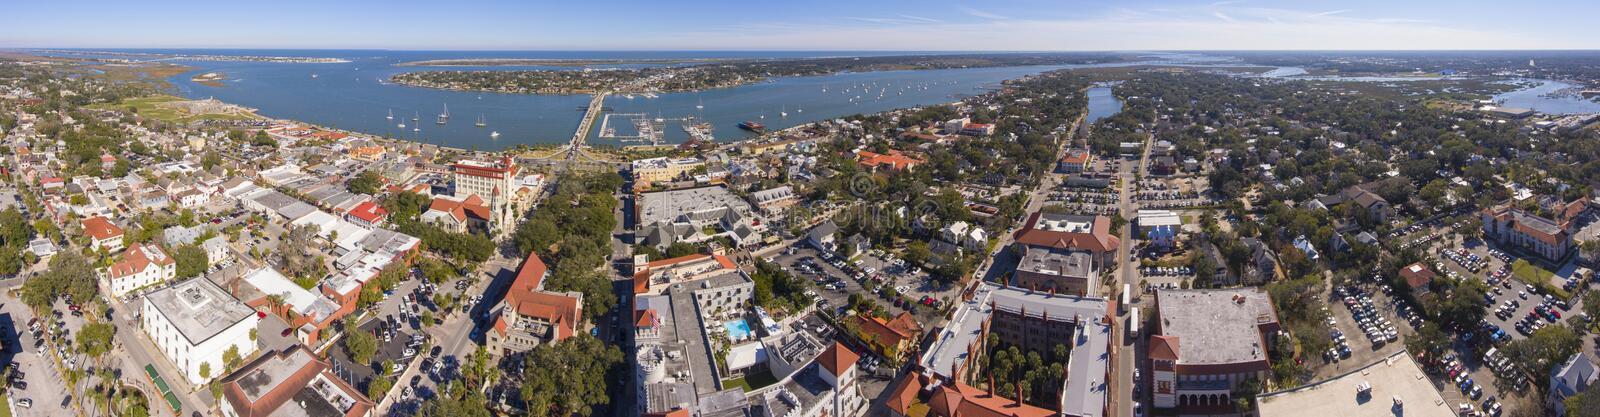 St. Augustine city aerial view, Florida, USA royalty free stock photos